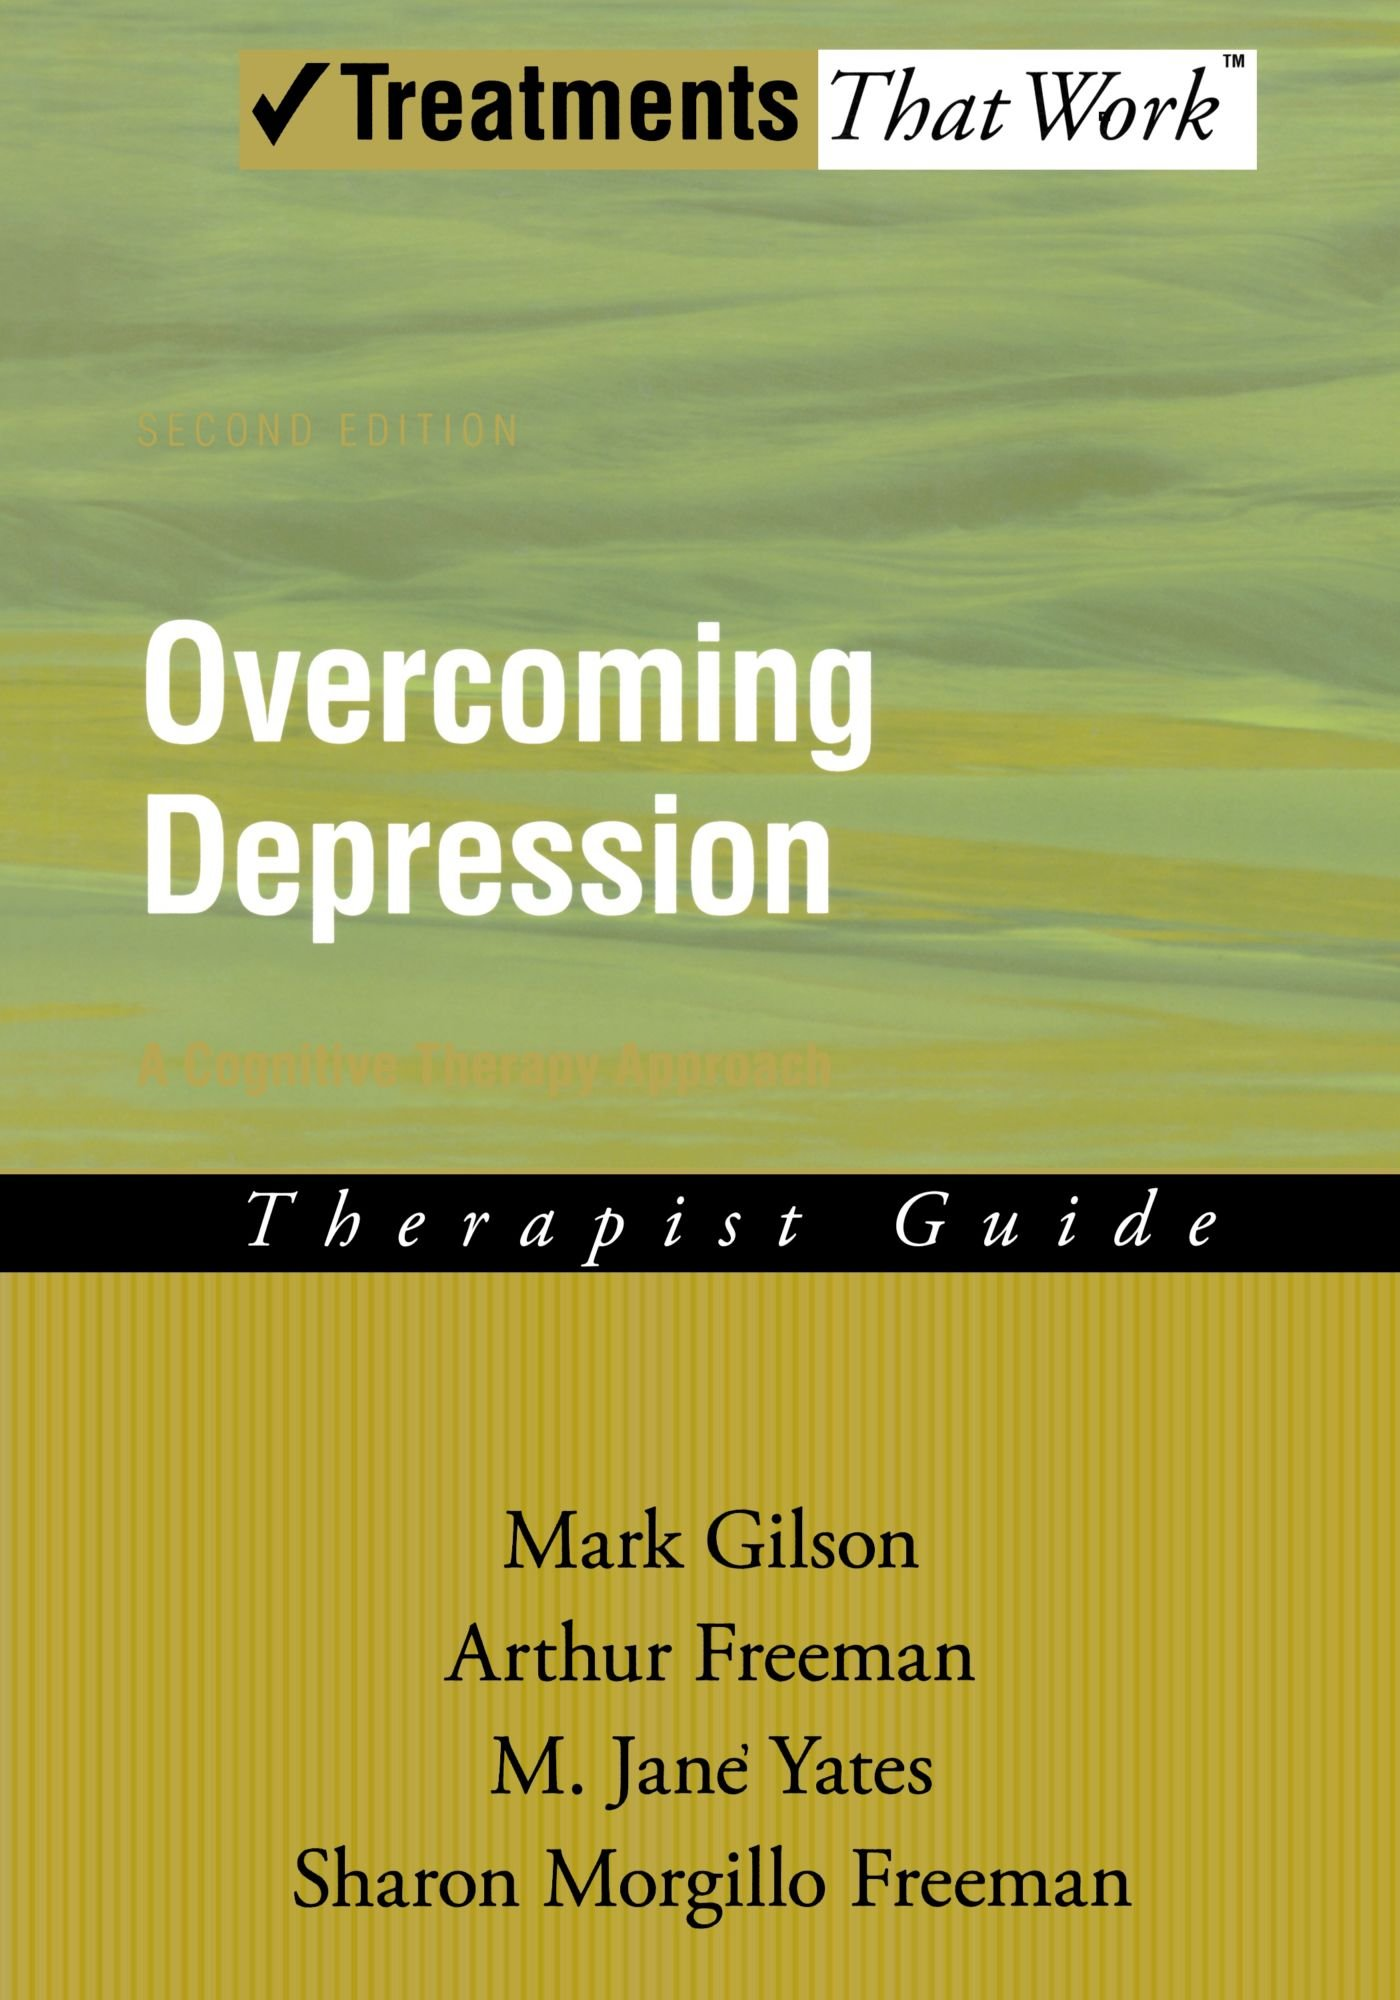 Overcoming depression a cognitive therapy approach therapist guide mark gilson arthur freeman 9780195300000 books amazon ca